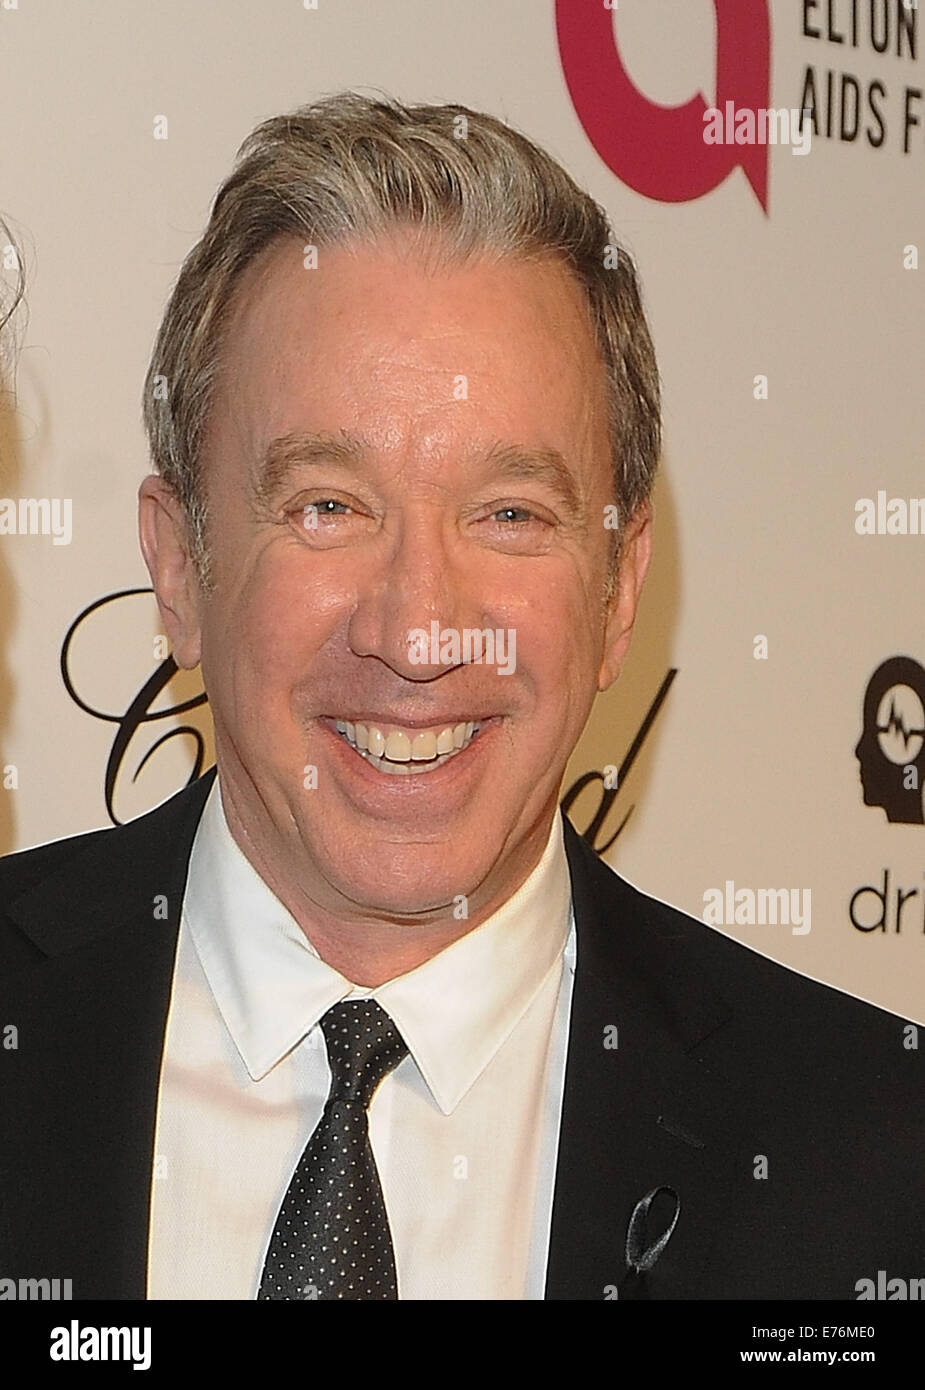 22nd Annual Elton John AIDS Foundation Academy Awards Viewing/After Party - Arrivals  Featuring: Tim Allen Where: - Stock Image